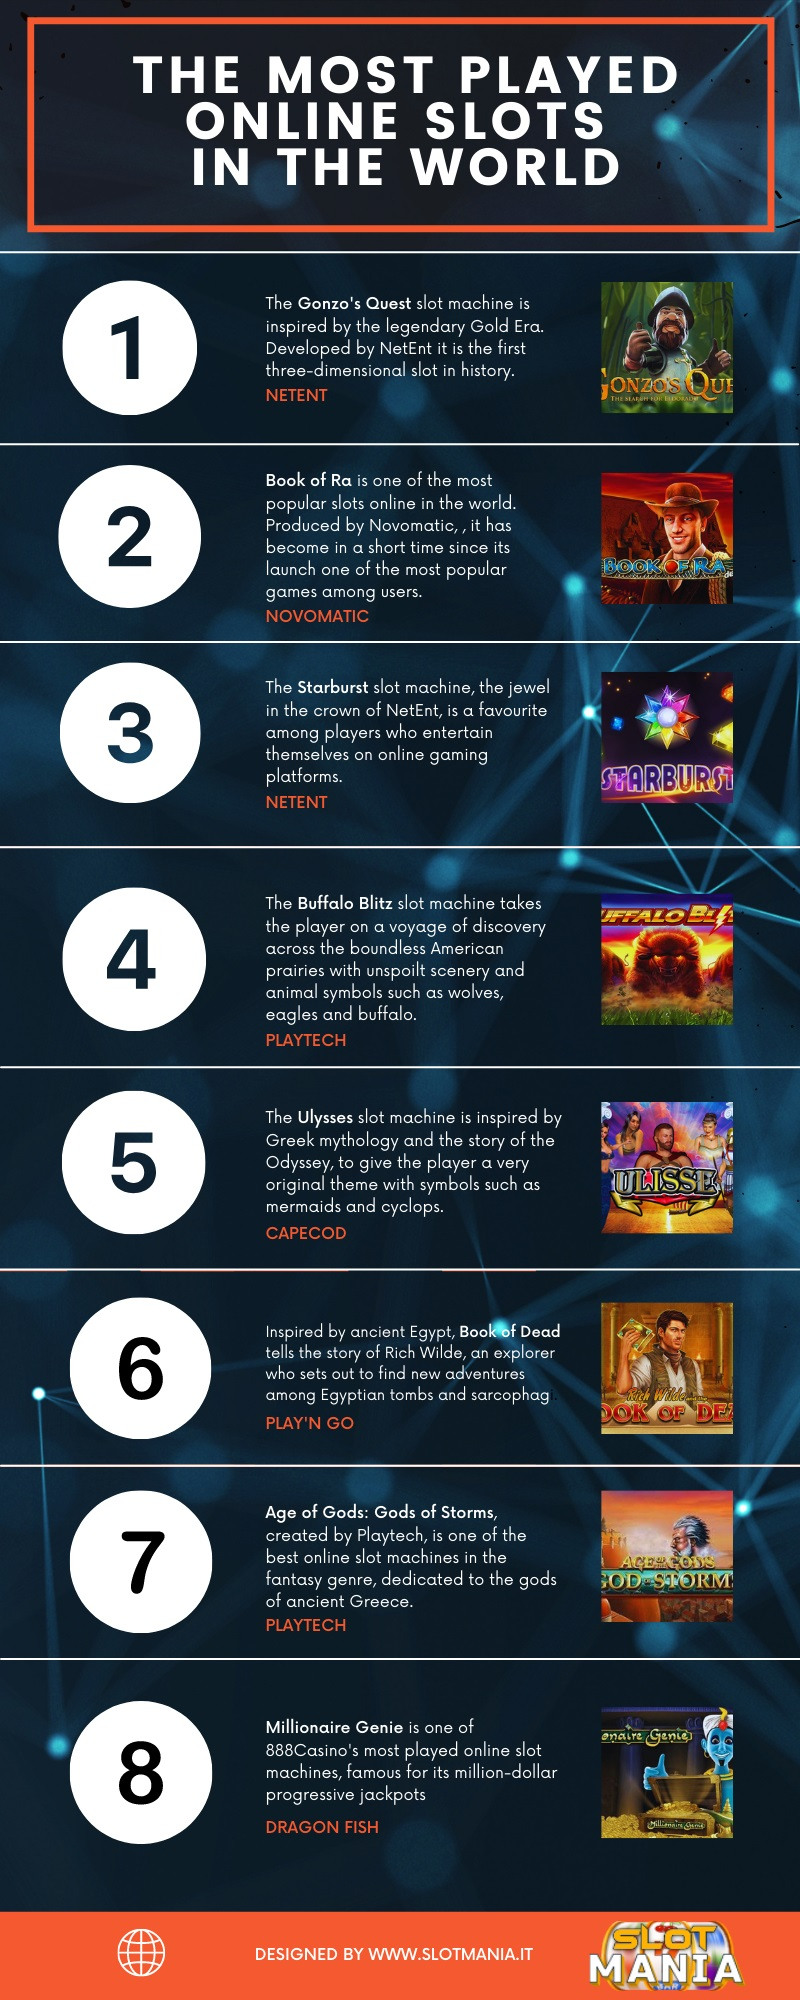 the-most-played-online-slots-in-the-world-infographic-plaza